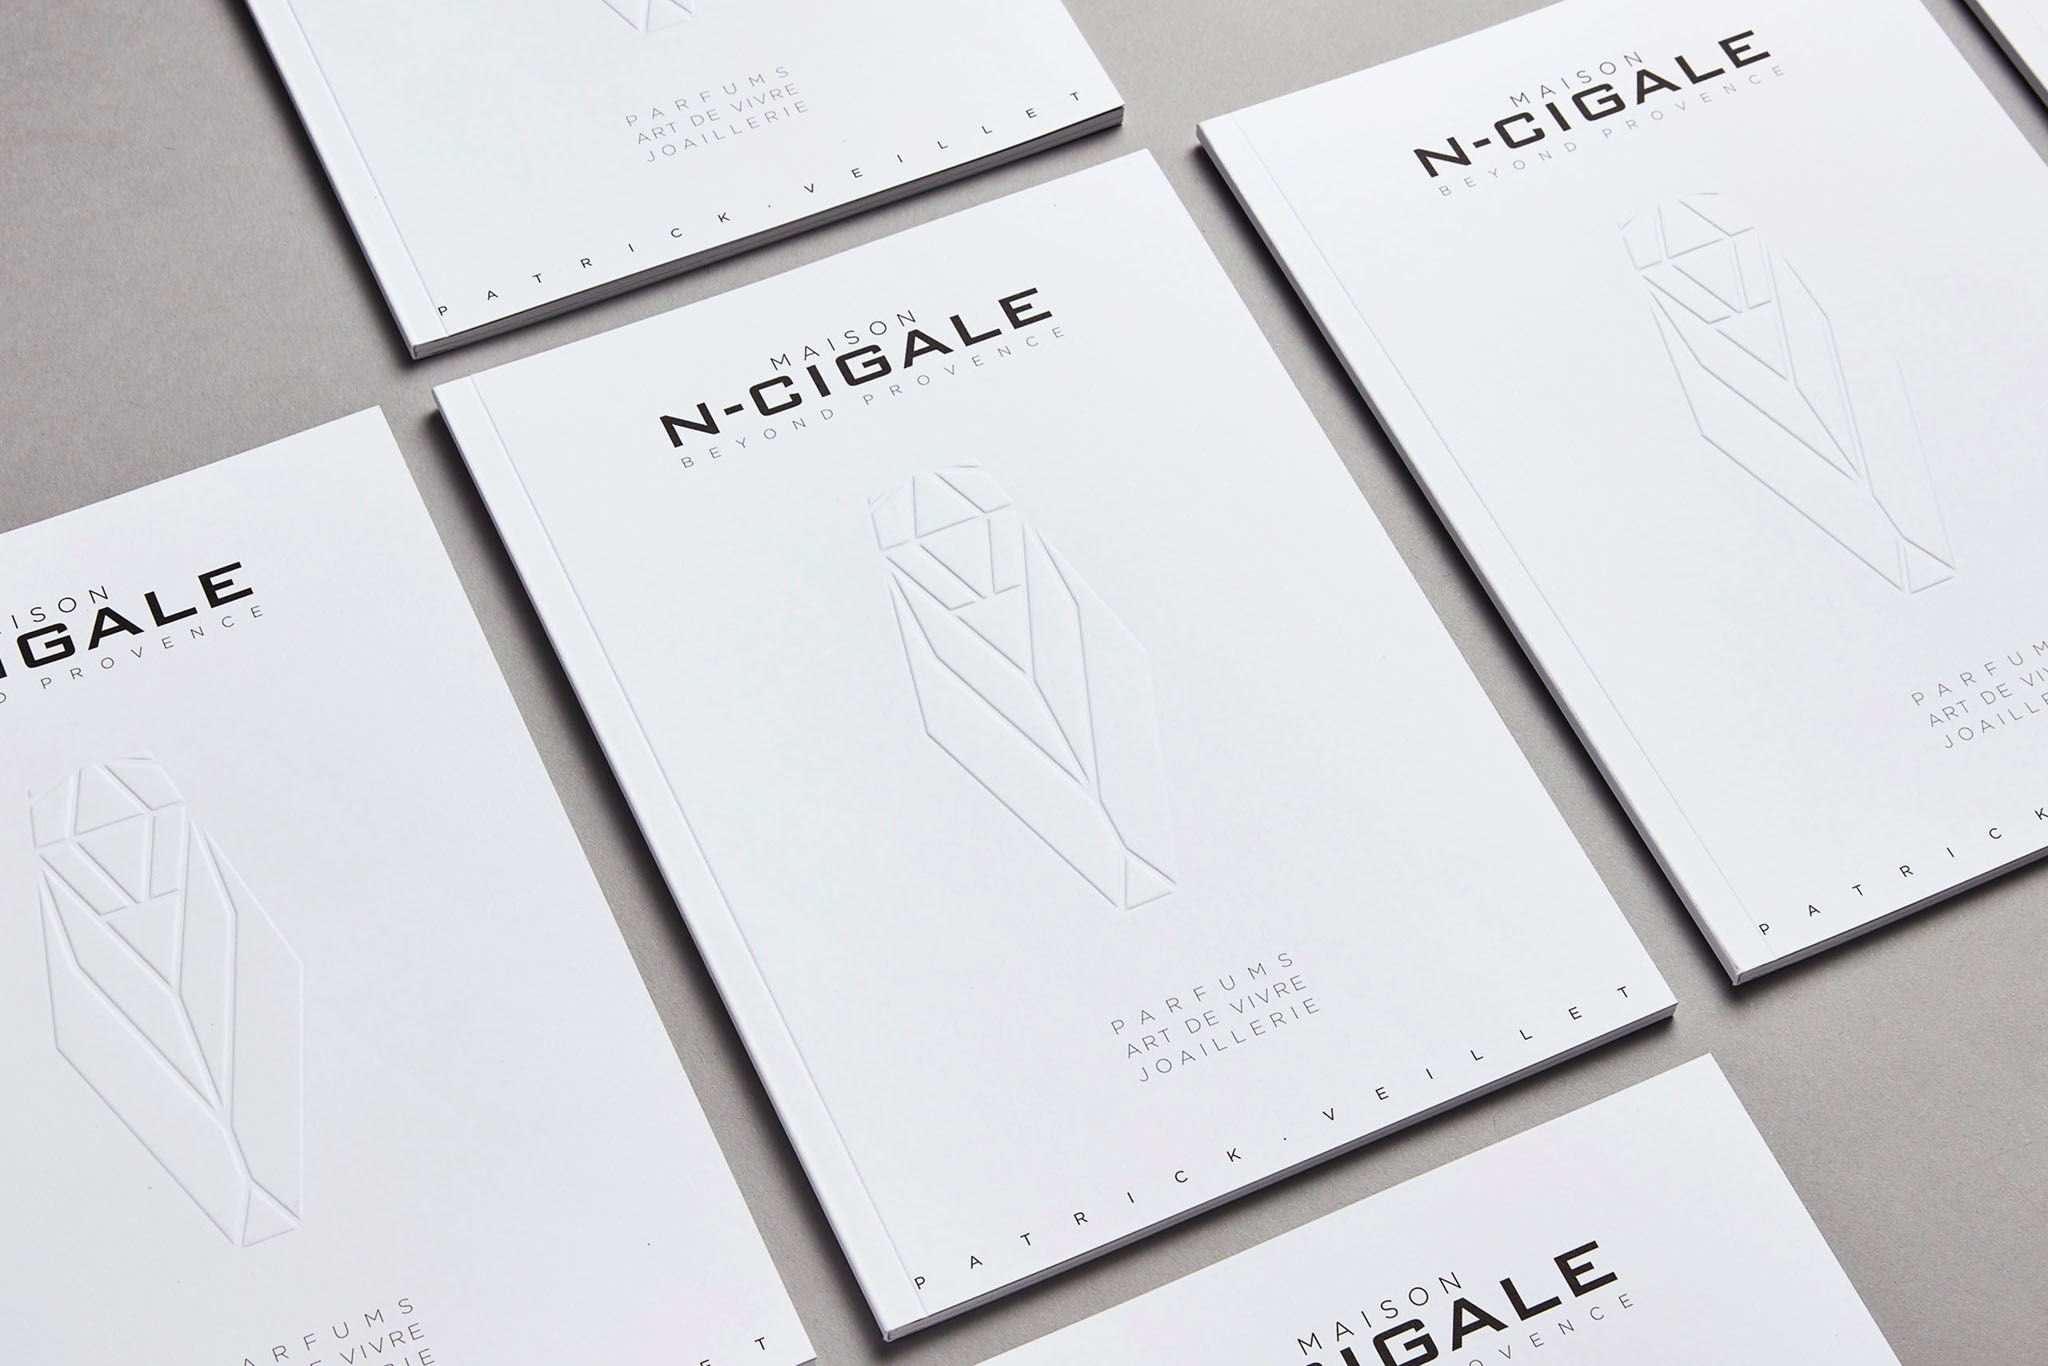 N-CIGALE Catalogue Parfums Art de Vivre Joaillerie Marseille Provence